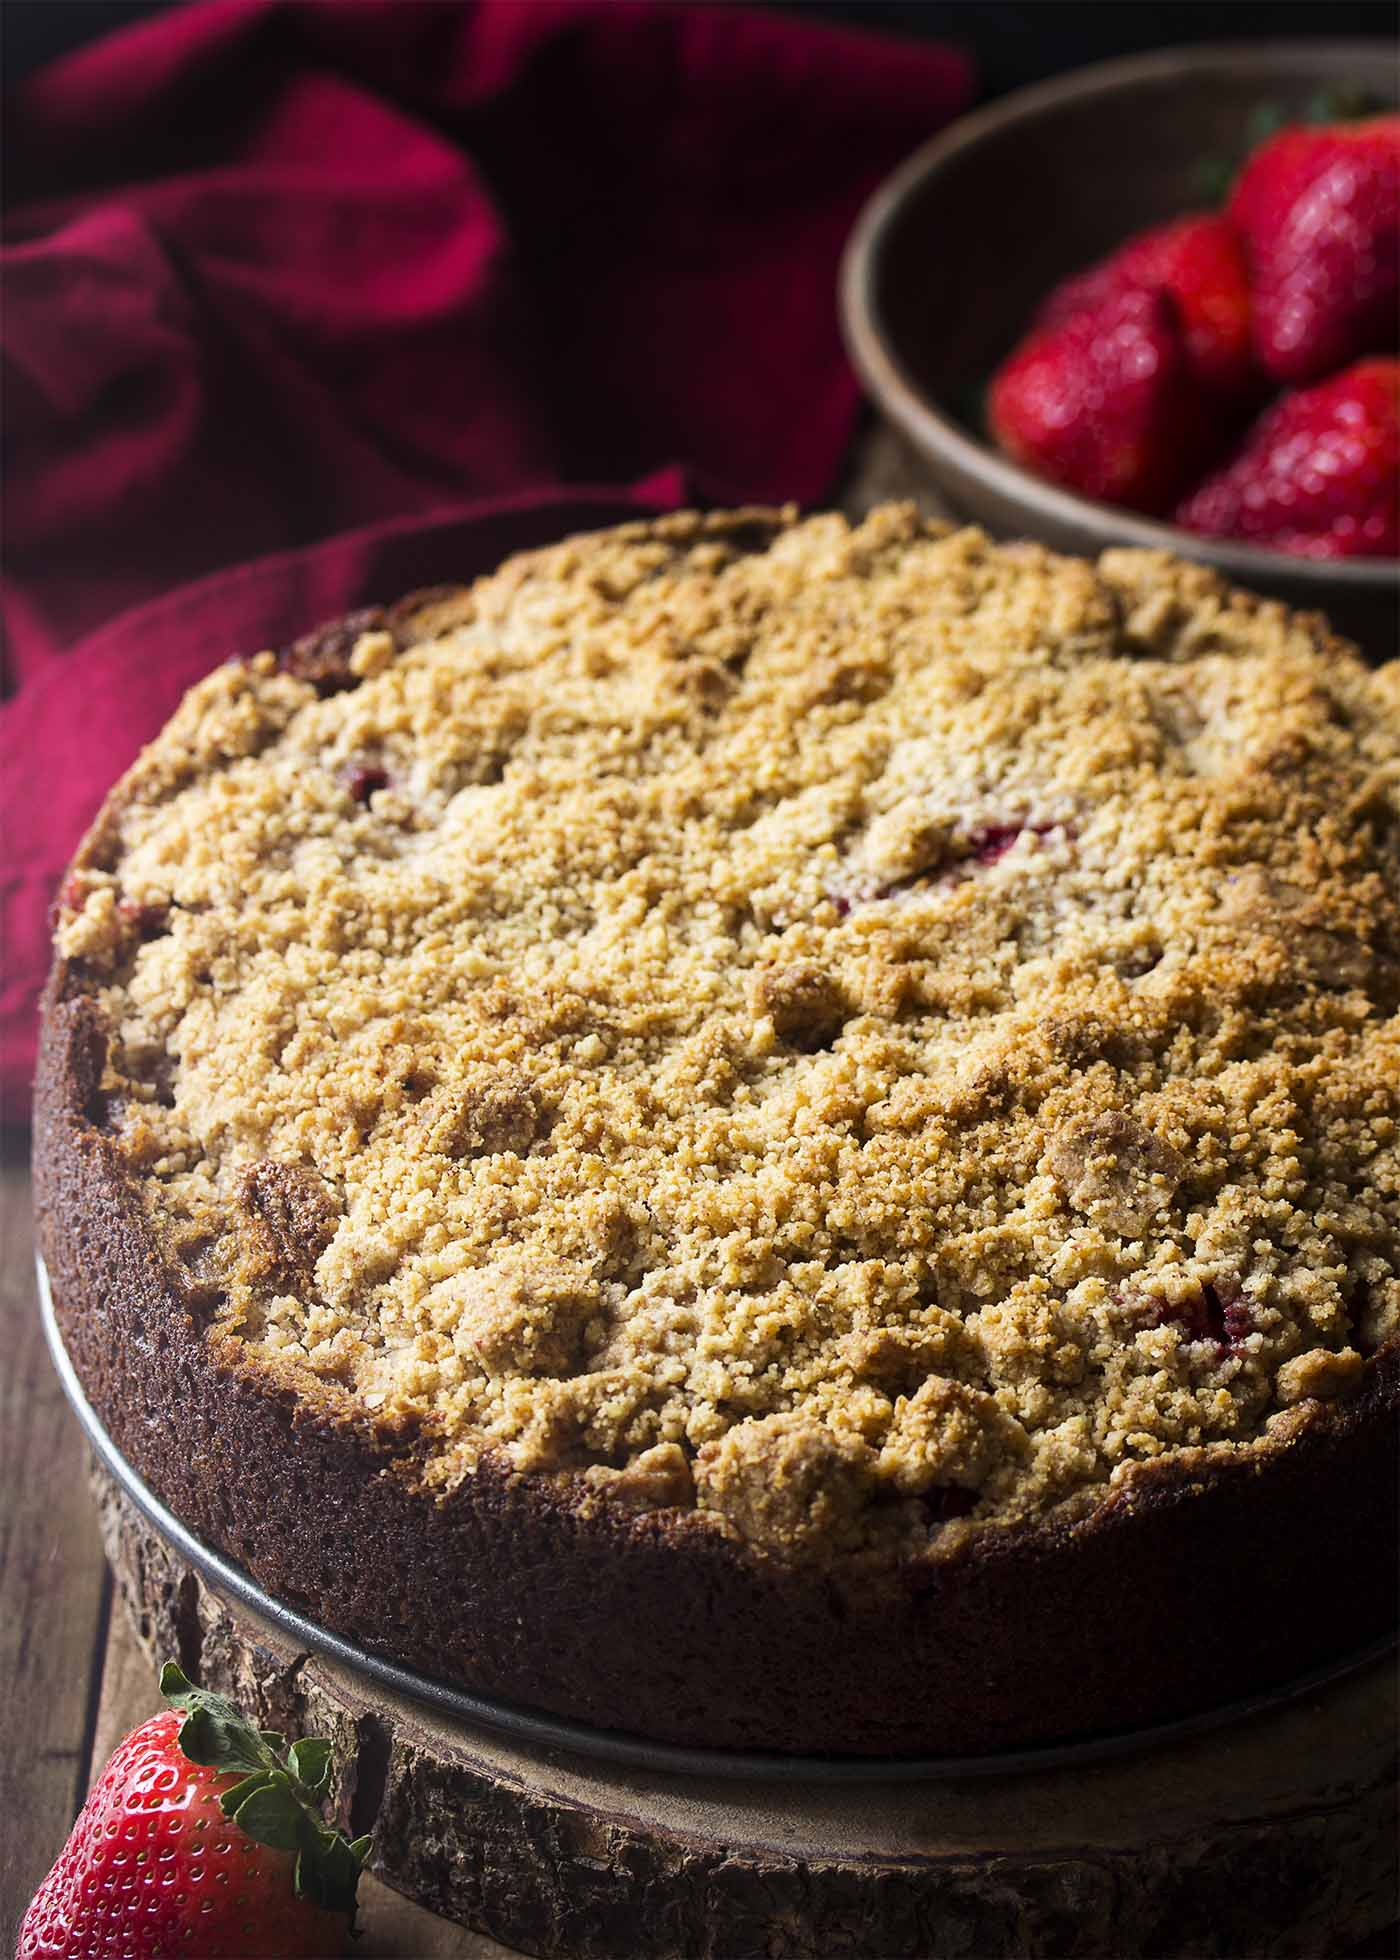 The finished banana coffee cake with strawberry filling and crumb topping.